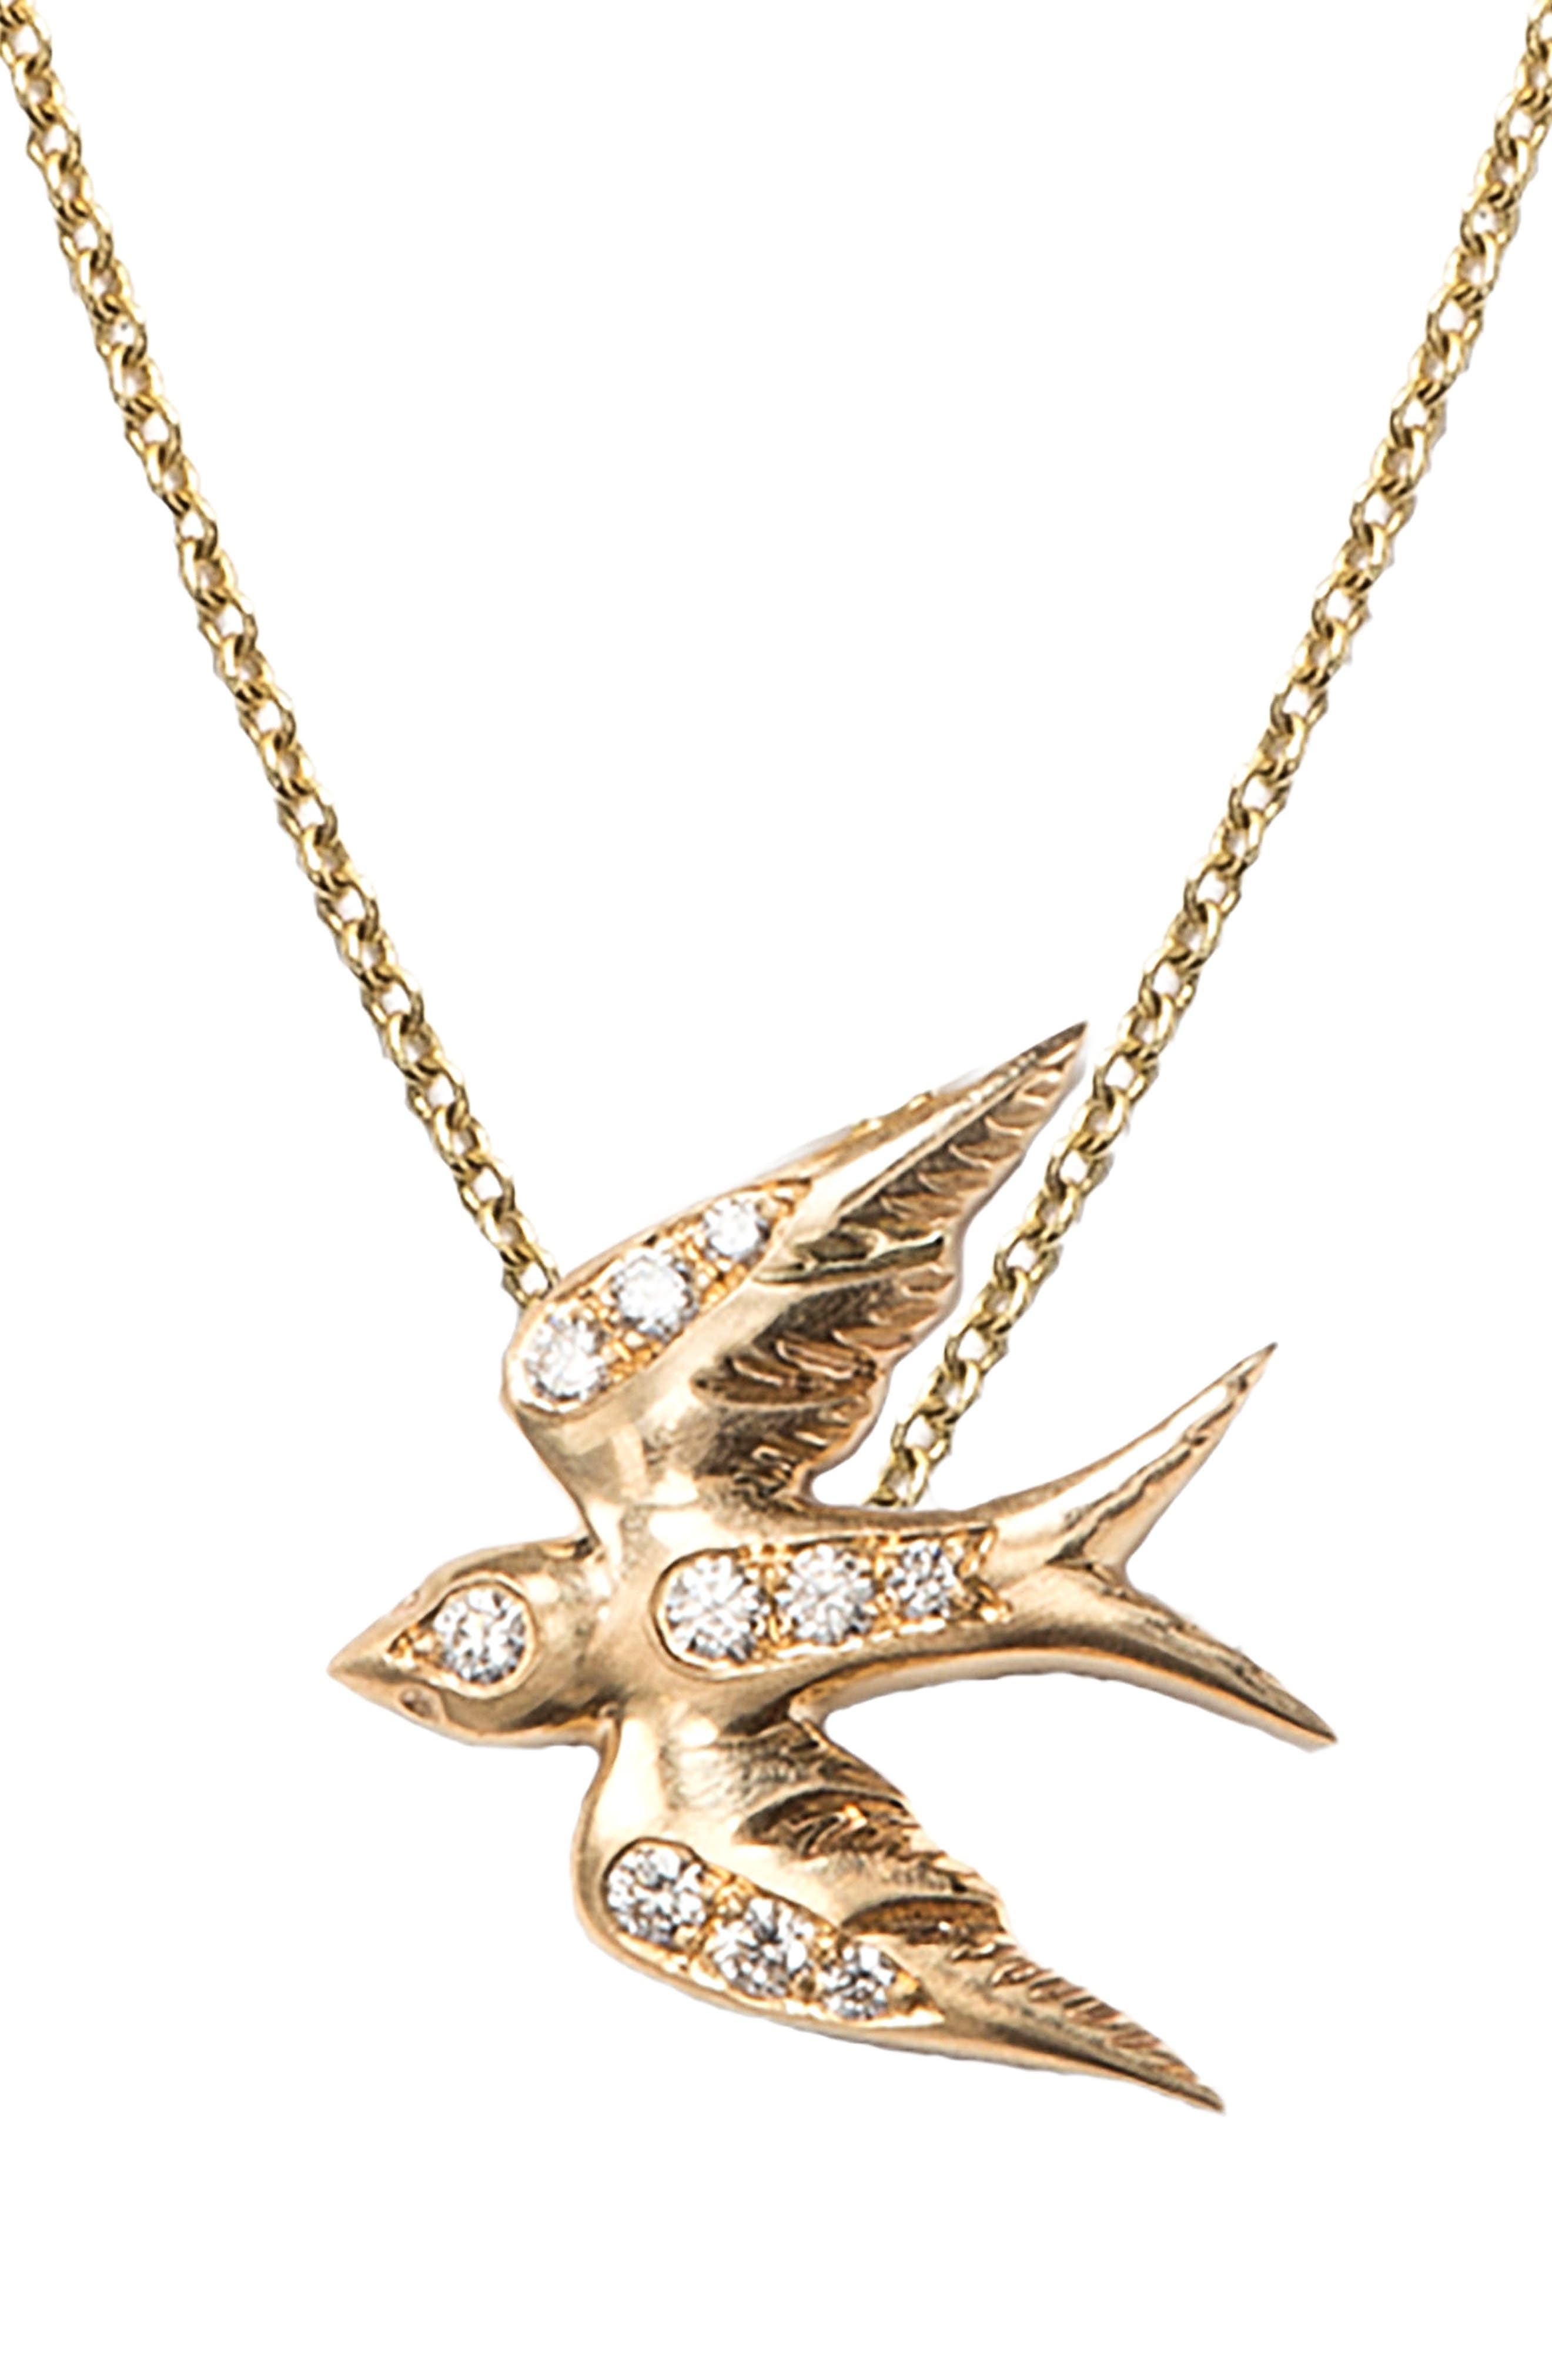 Nora Kogan Diamond Swallow Pendant Necklace